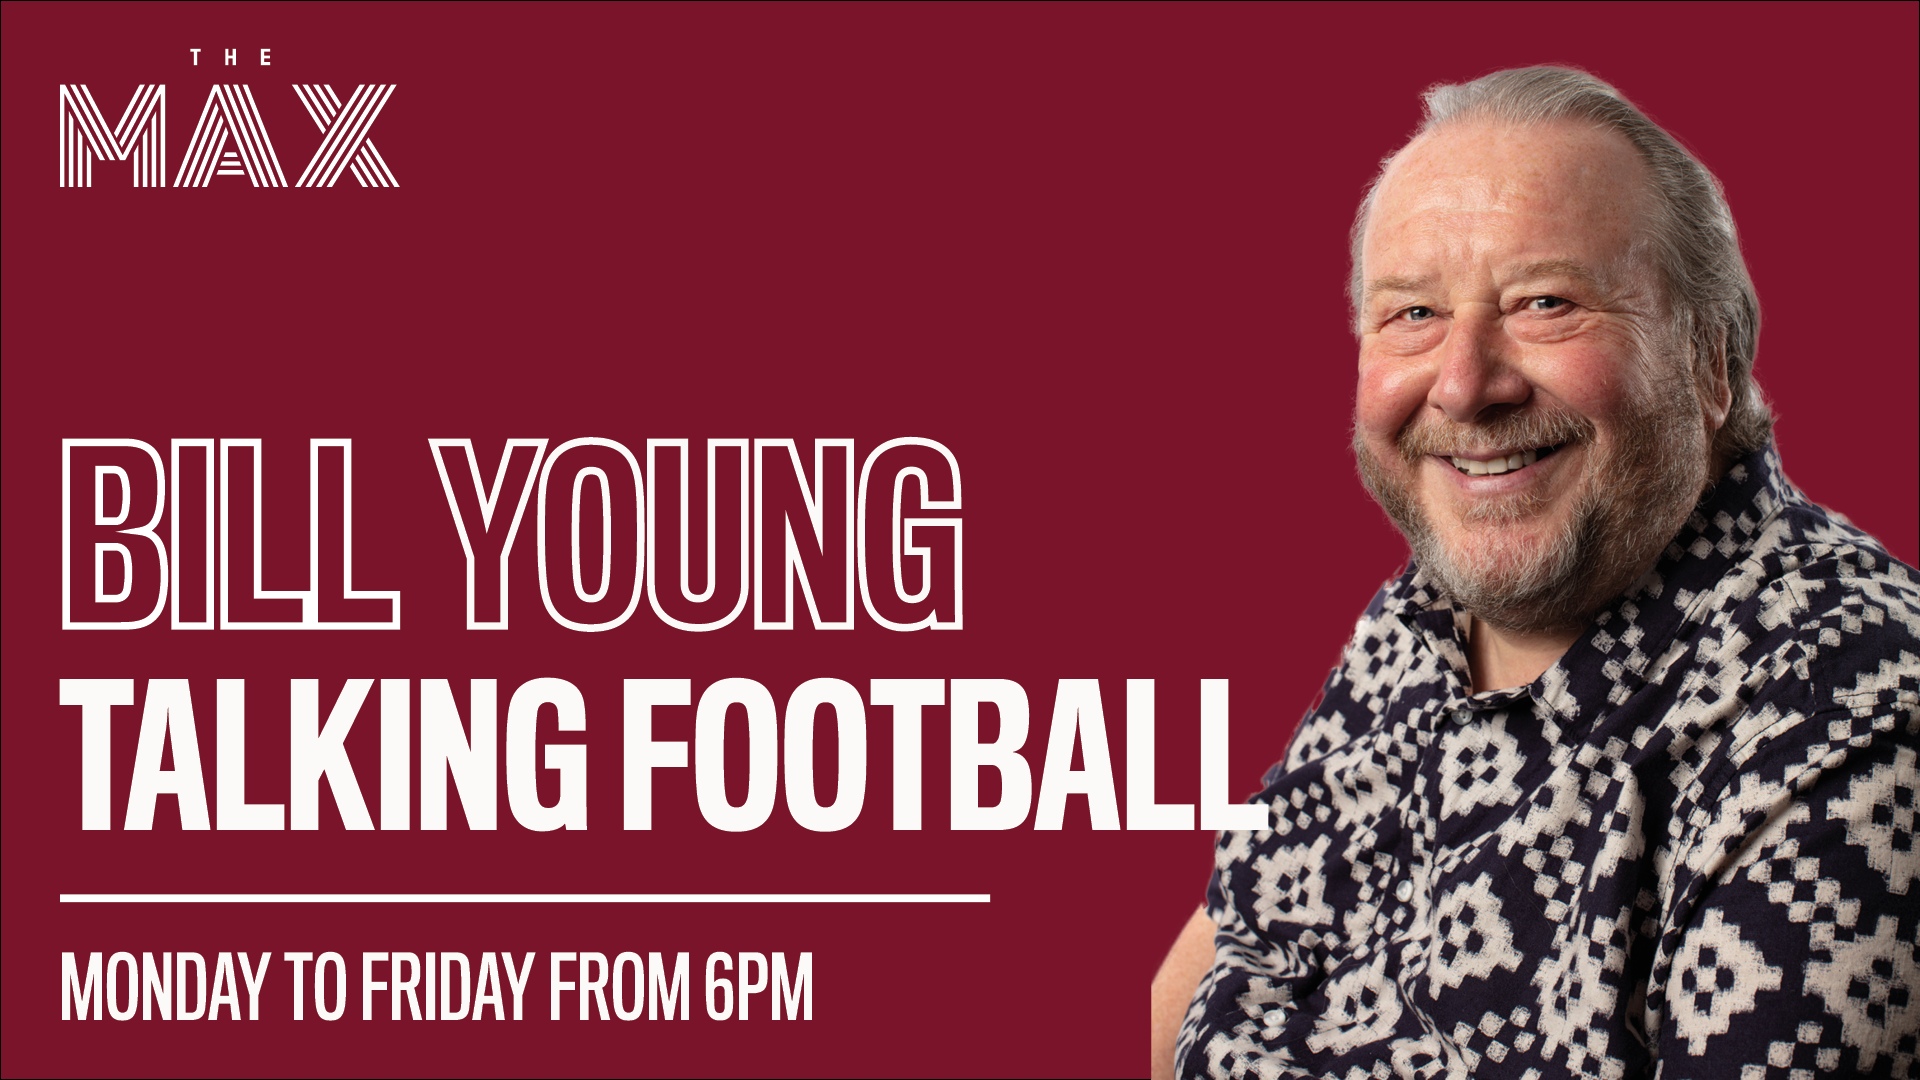 Talking Football with Bill Young - Tuesday 11th of August - Episode 7